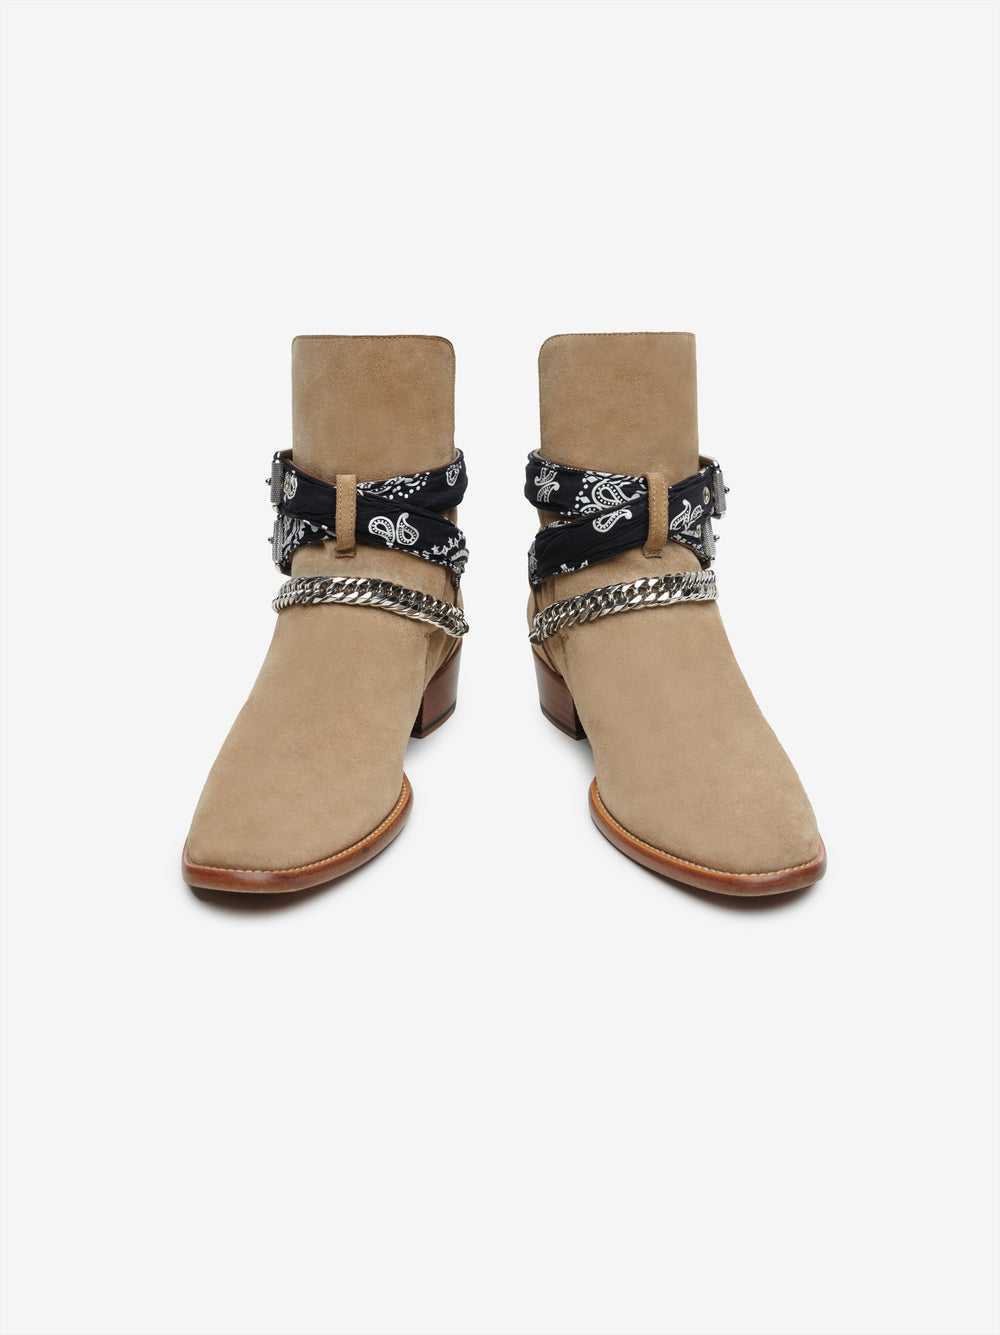 BANDANA BUCKLE BOOT - Tan